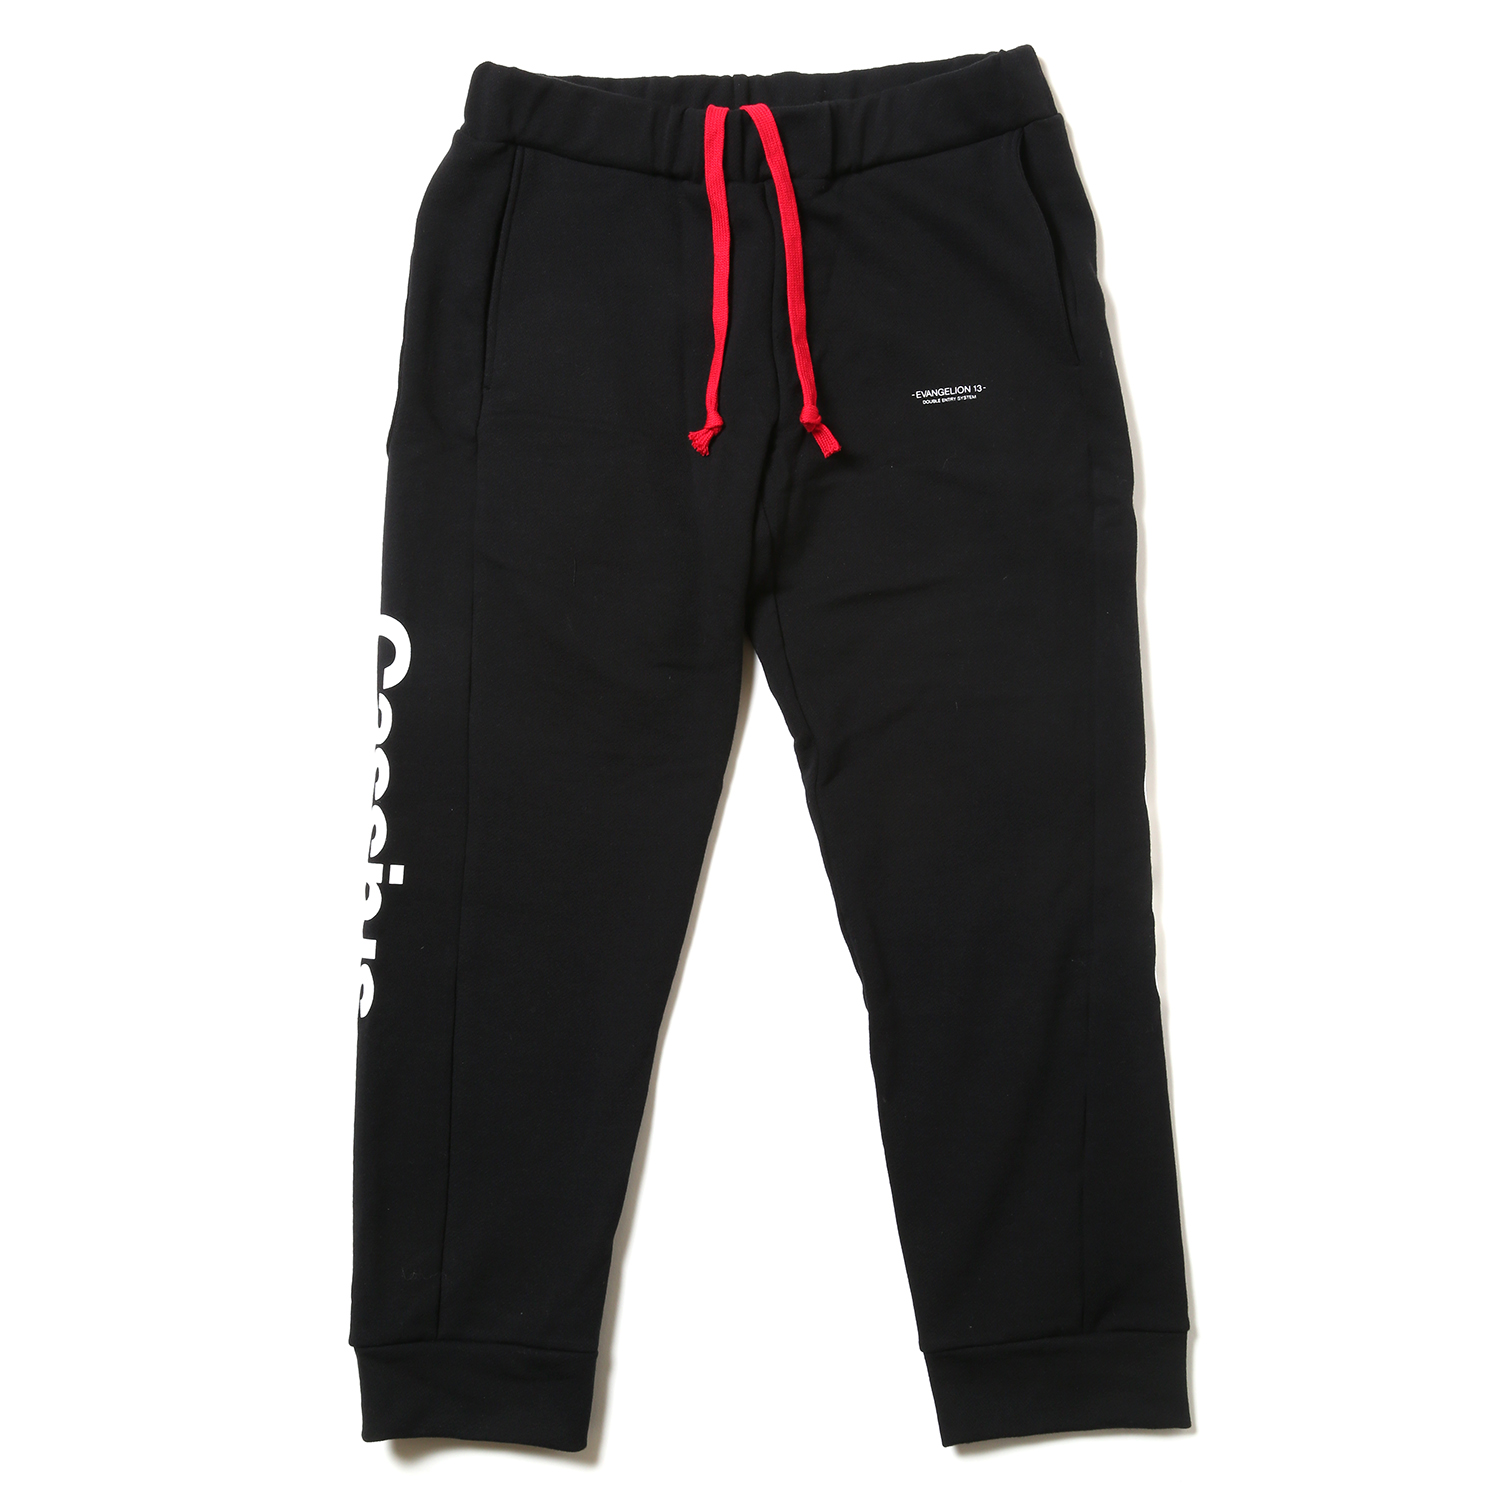 EVANGELION XIII Sweat Pants (ブラック)